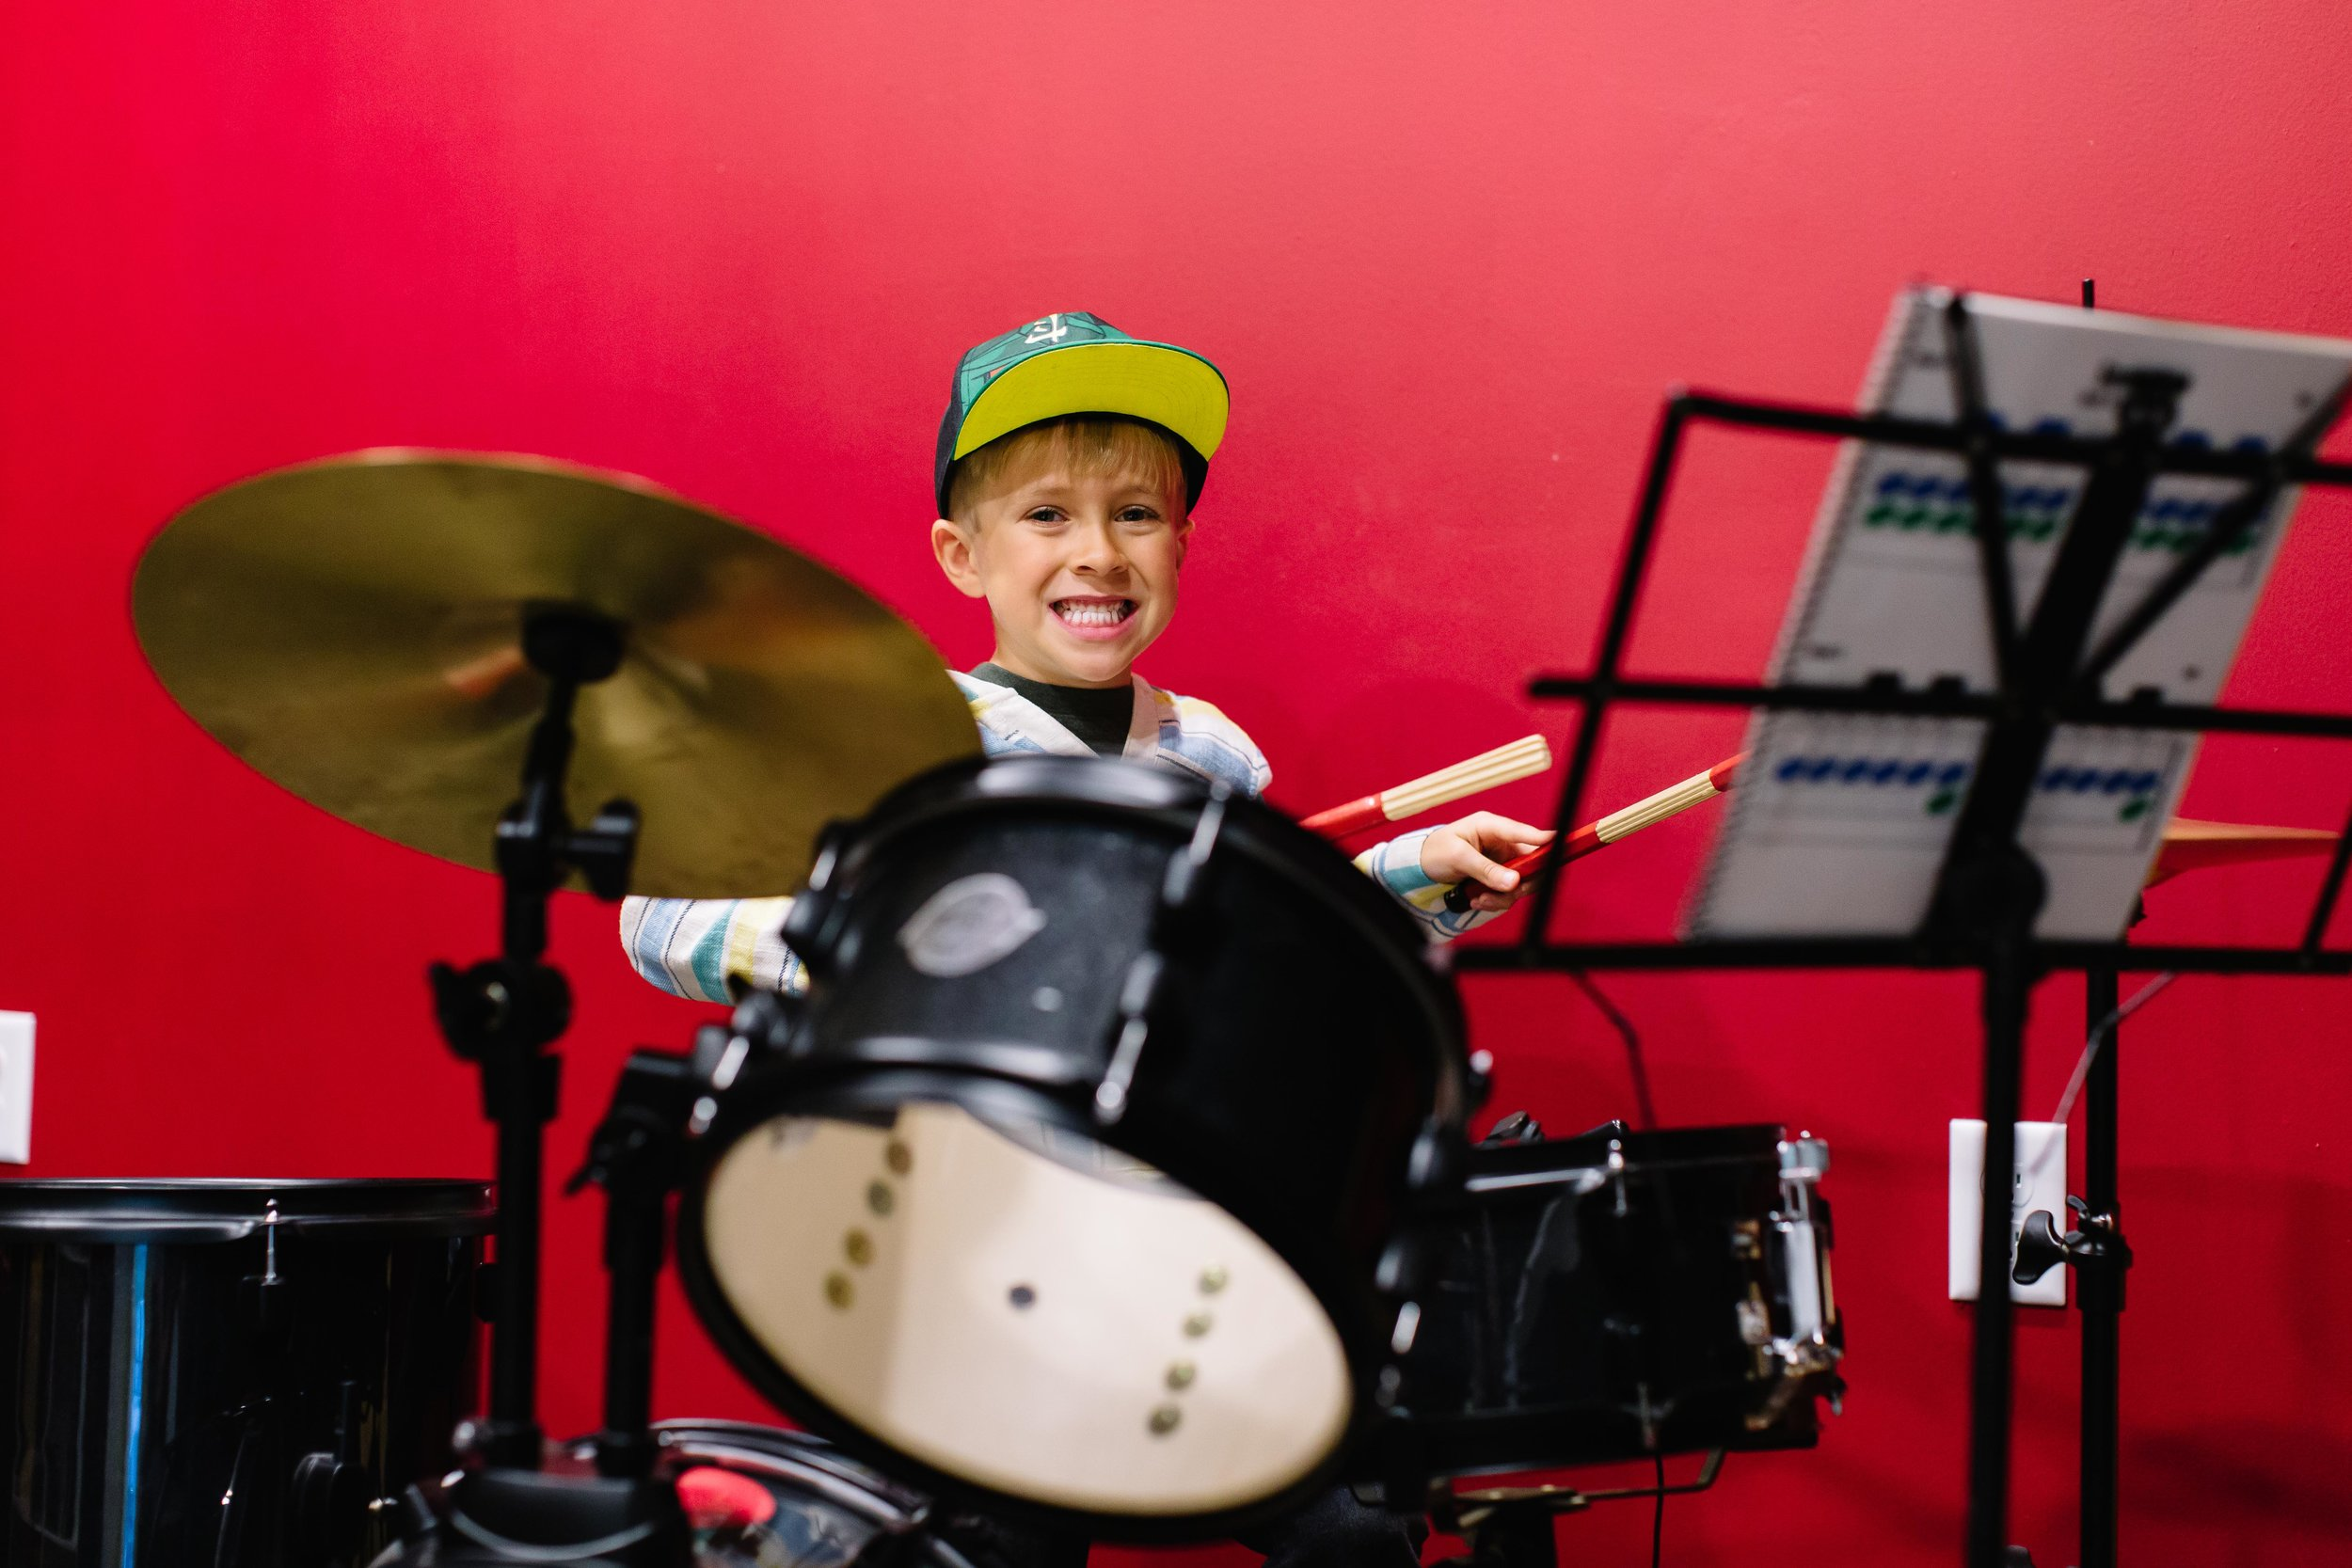 - Drum Lessons your kids will thank you for!